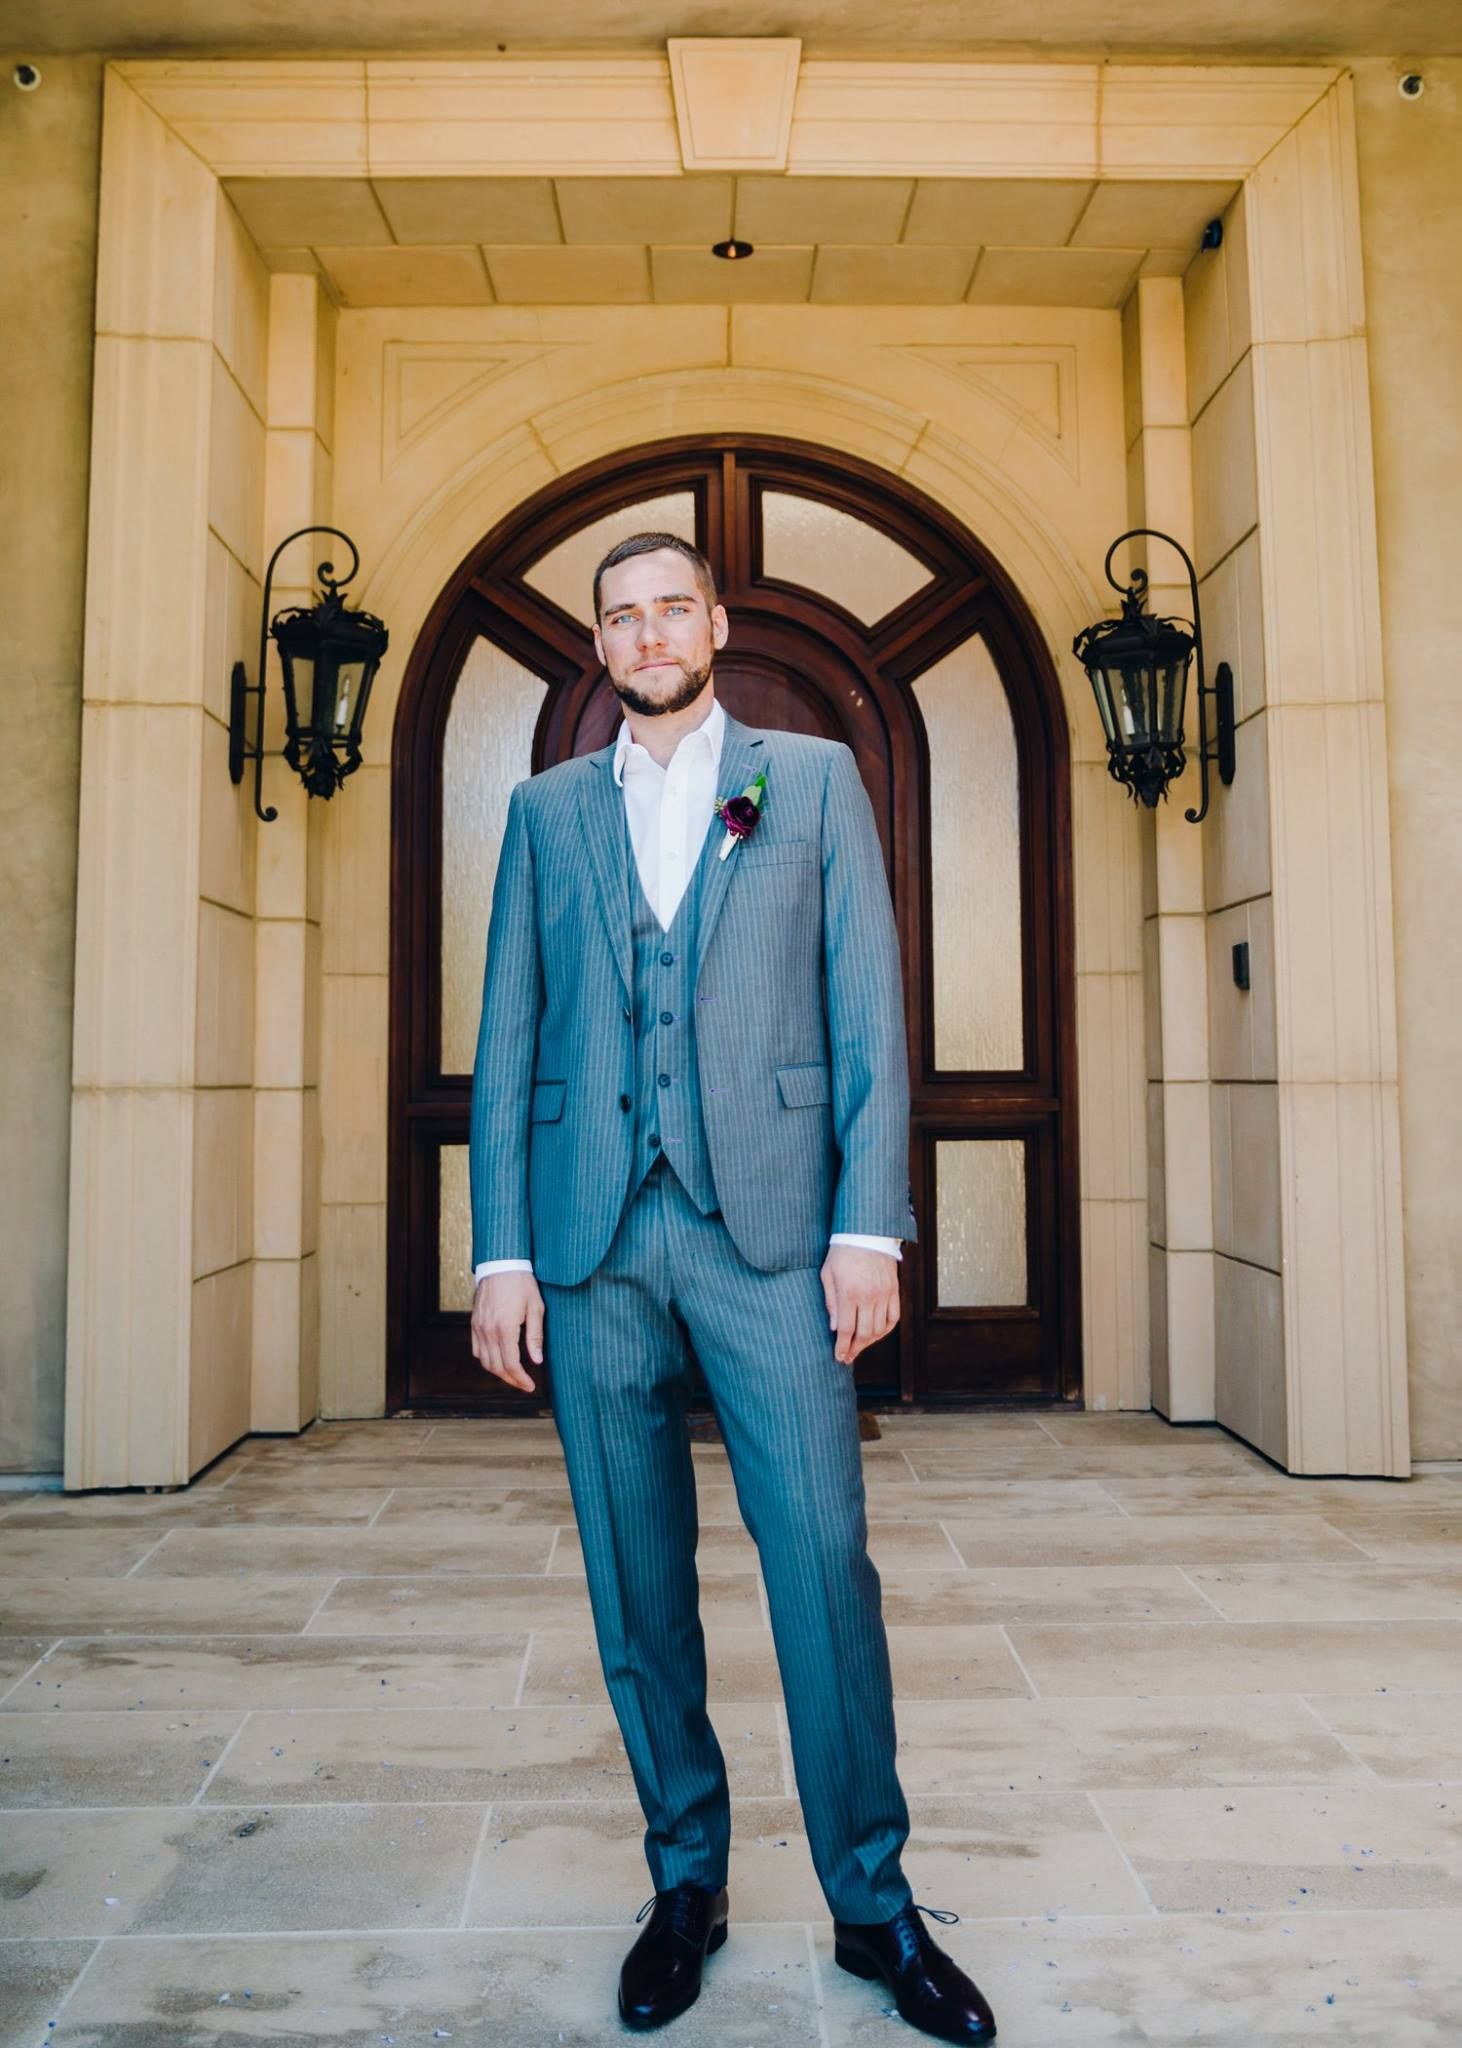 Sleek and handsomely tailored, this bespoke suit by #JBClothiers is ...